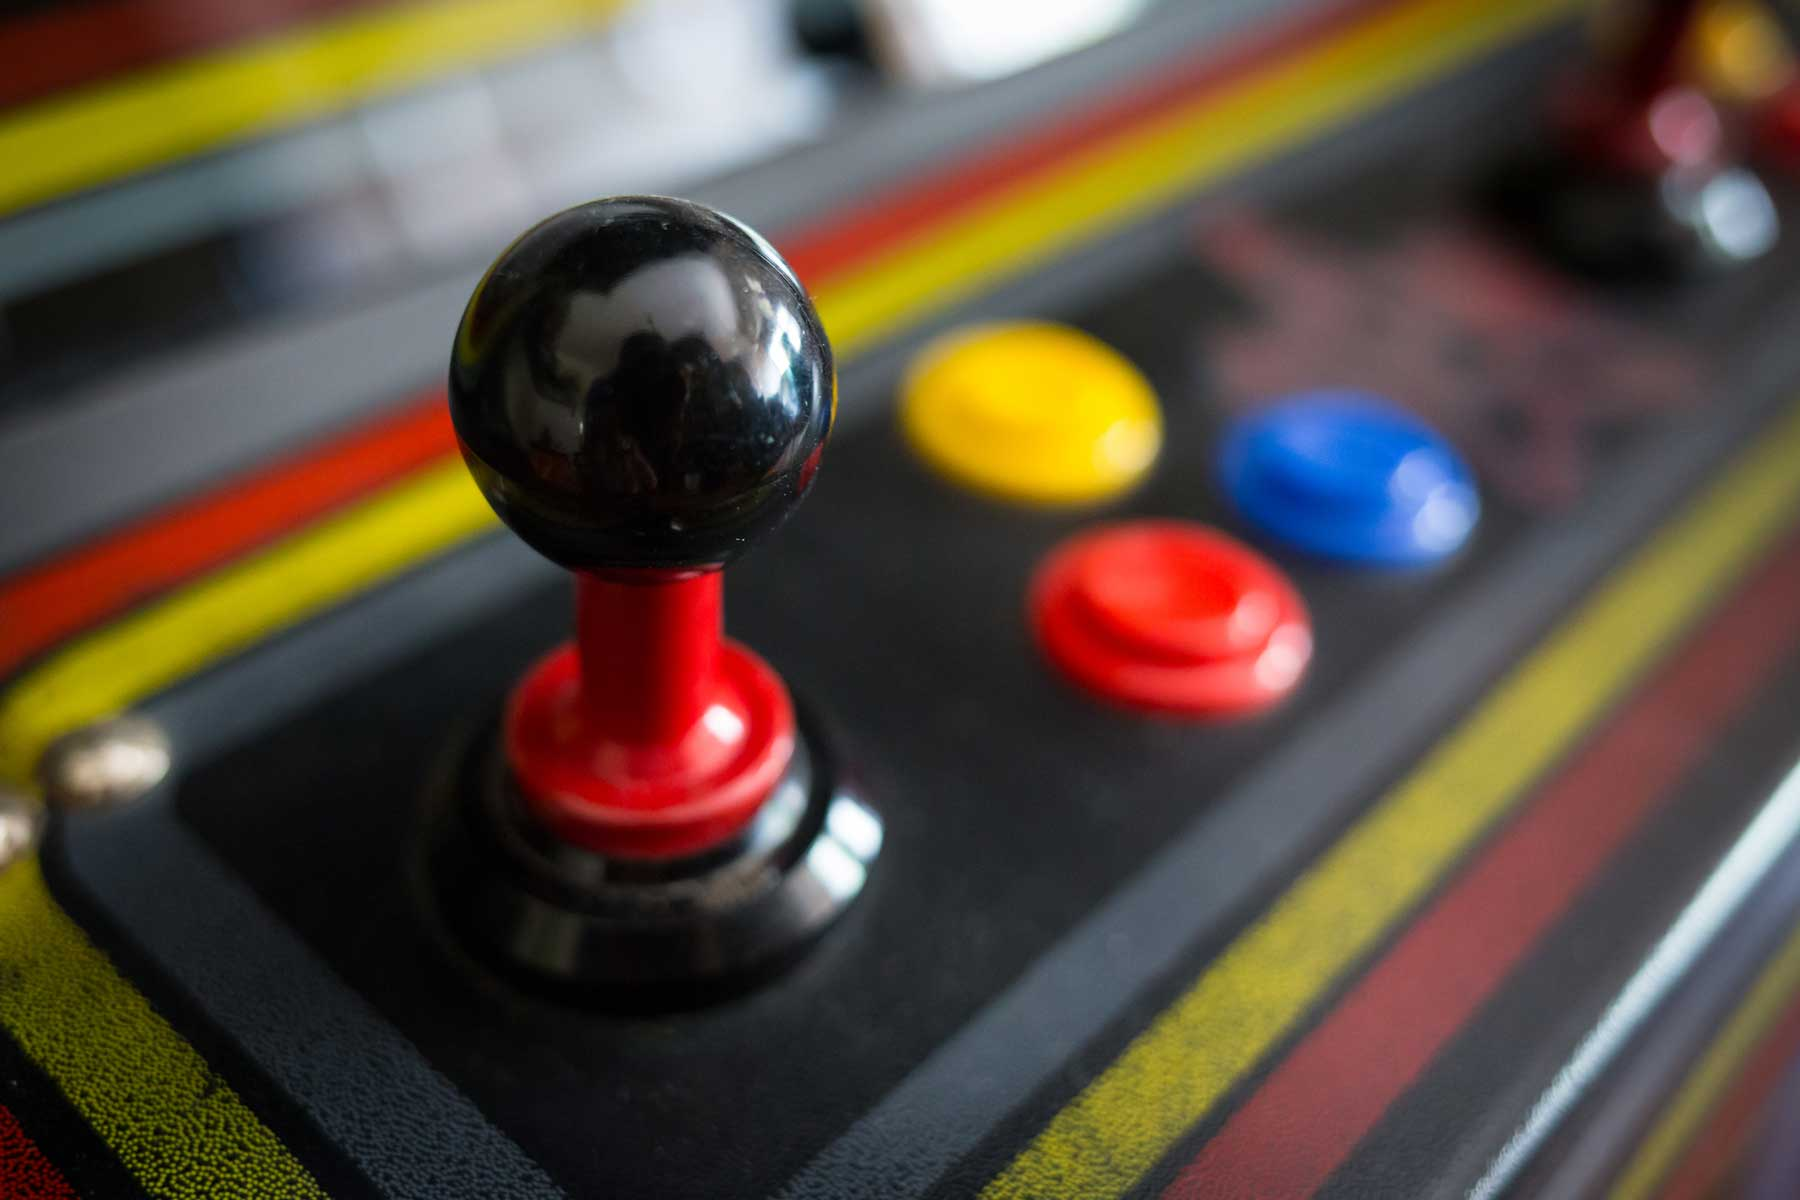 Joystick and button controls of classic coin-operated arcade game